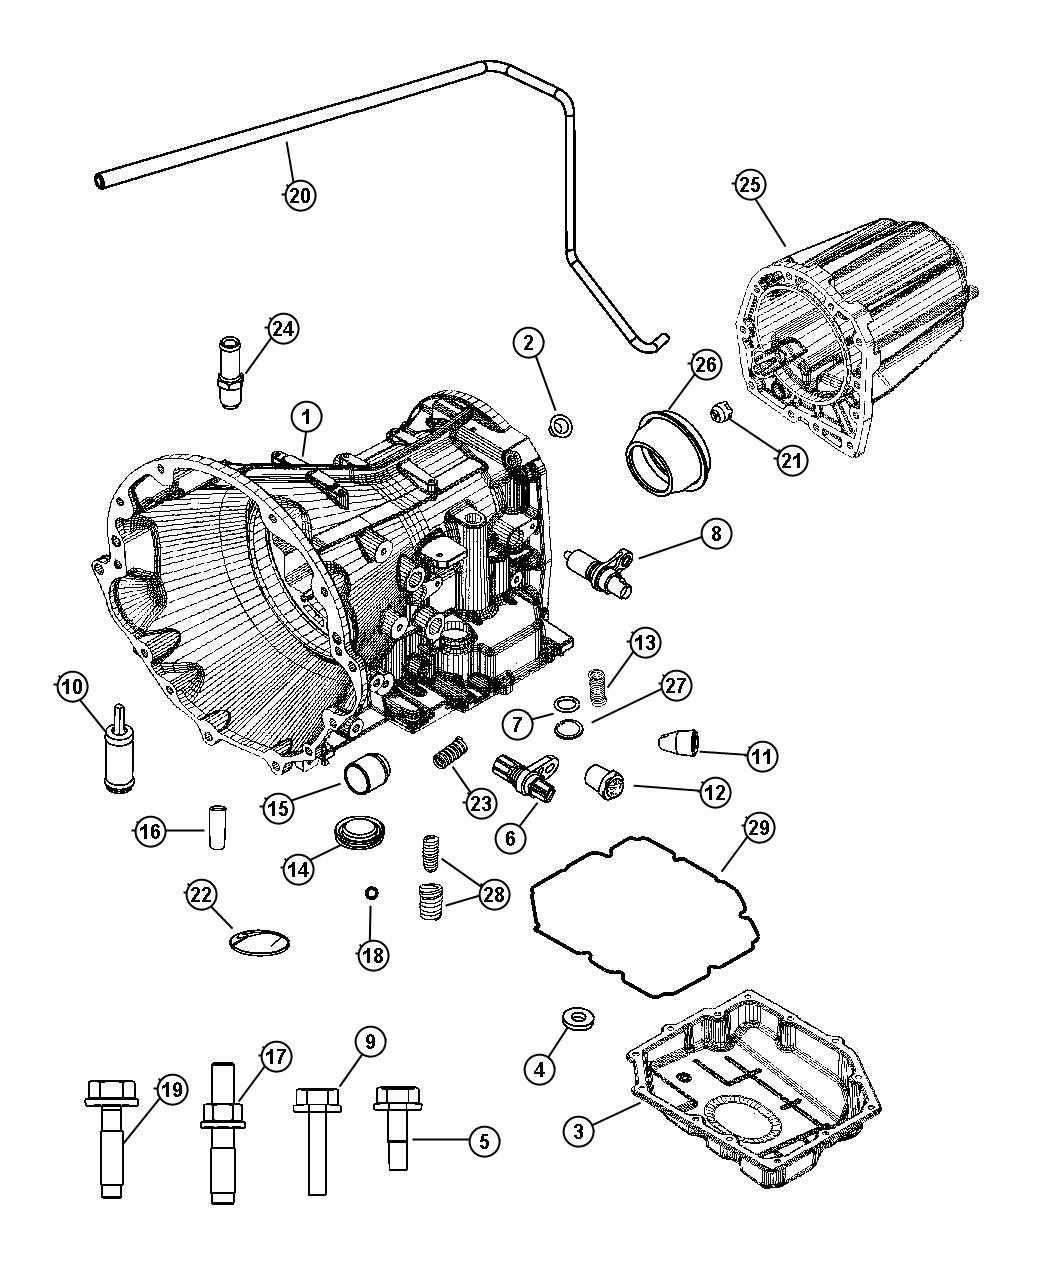 dodge transmission parts diagram  dodge  free engine image